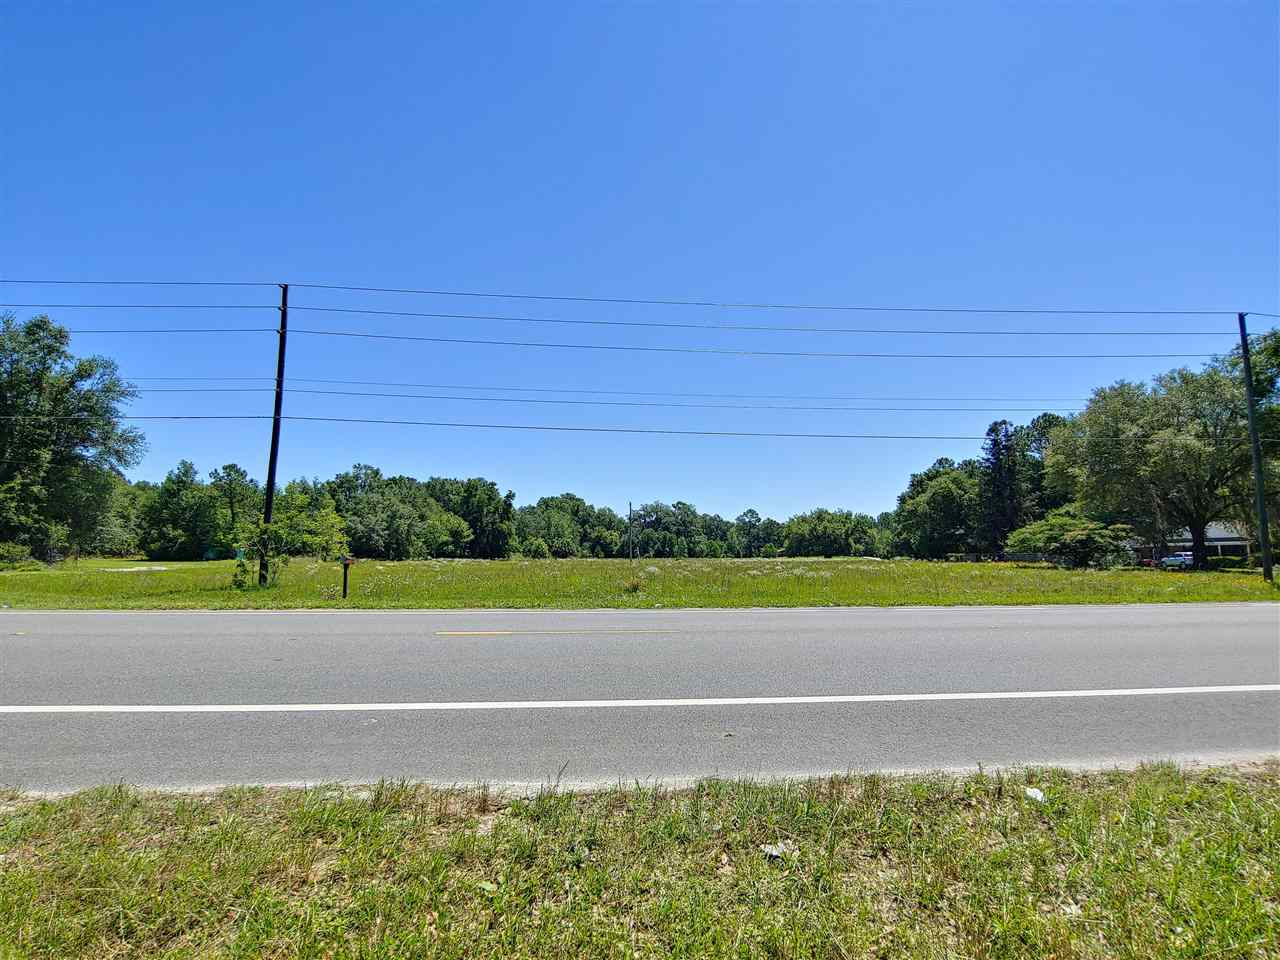 4.29 Acres on desirable North US 221. Beautiful cleared grass acreage. Great for Commercial or Residential.  Zoned Mixed Use - Urban Development, 2 units per acre - Can be subdivided. Not in a Subdivision, No HOA, cleared with some established grass, 30' Easement on South boundary. Lot dimensions are aprox.  Buyer to verify dimensions and land use/zoning. Please notify agent before walking the property.